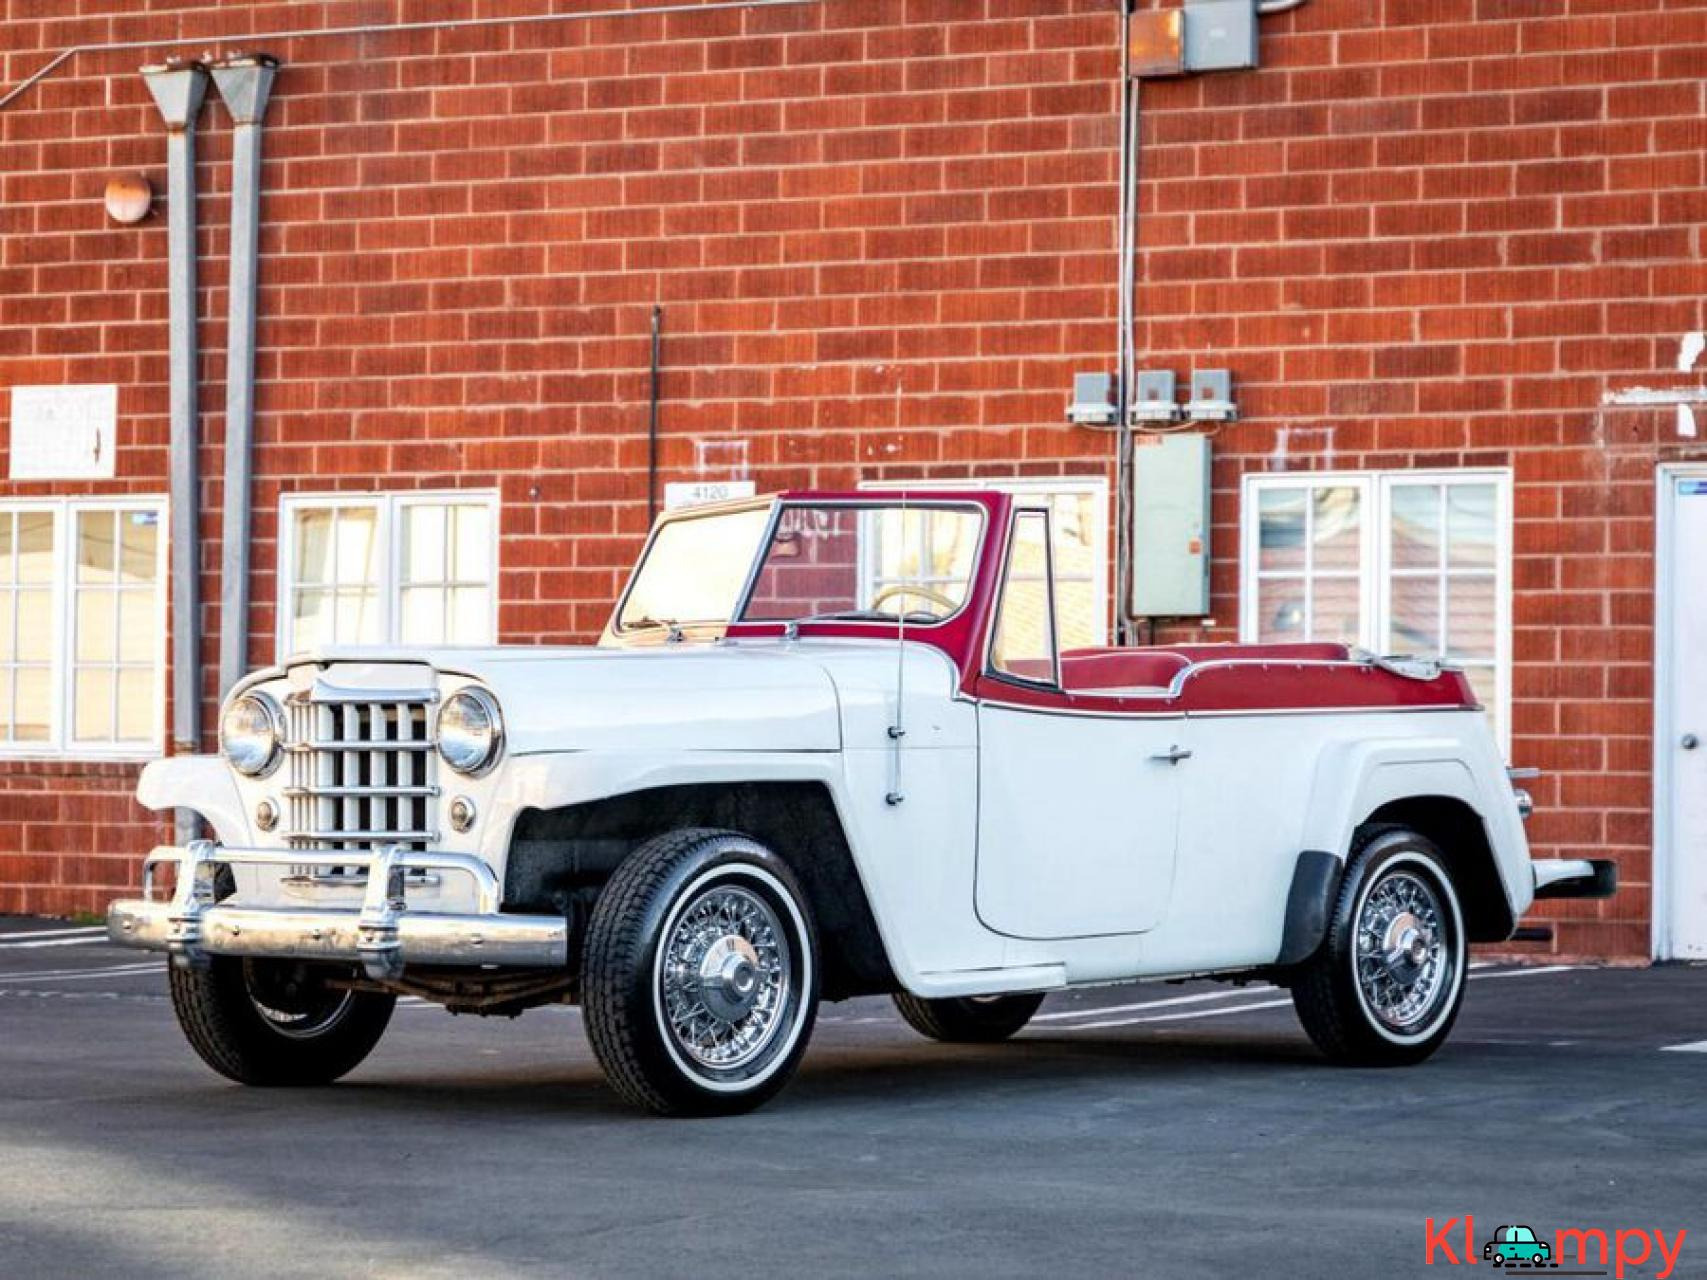 1951 Willys Jeepster Convertible 134.2 cu in 2.2 L - 1/17